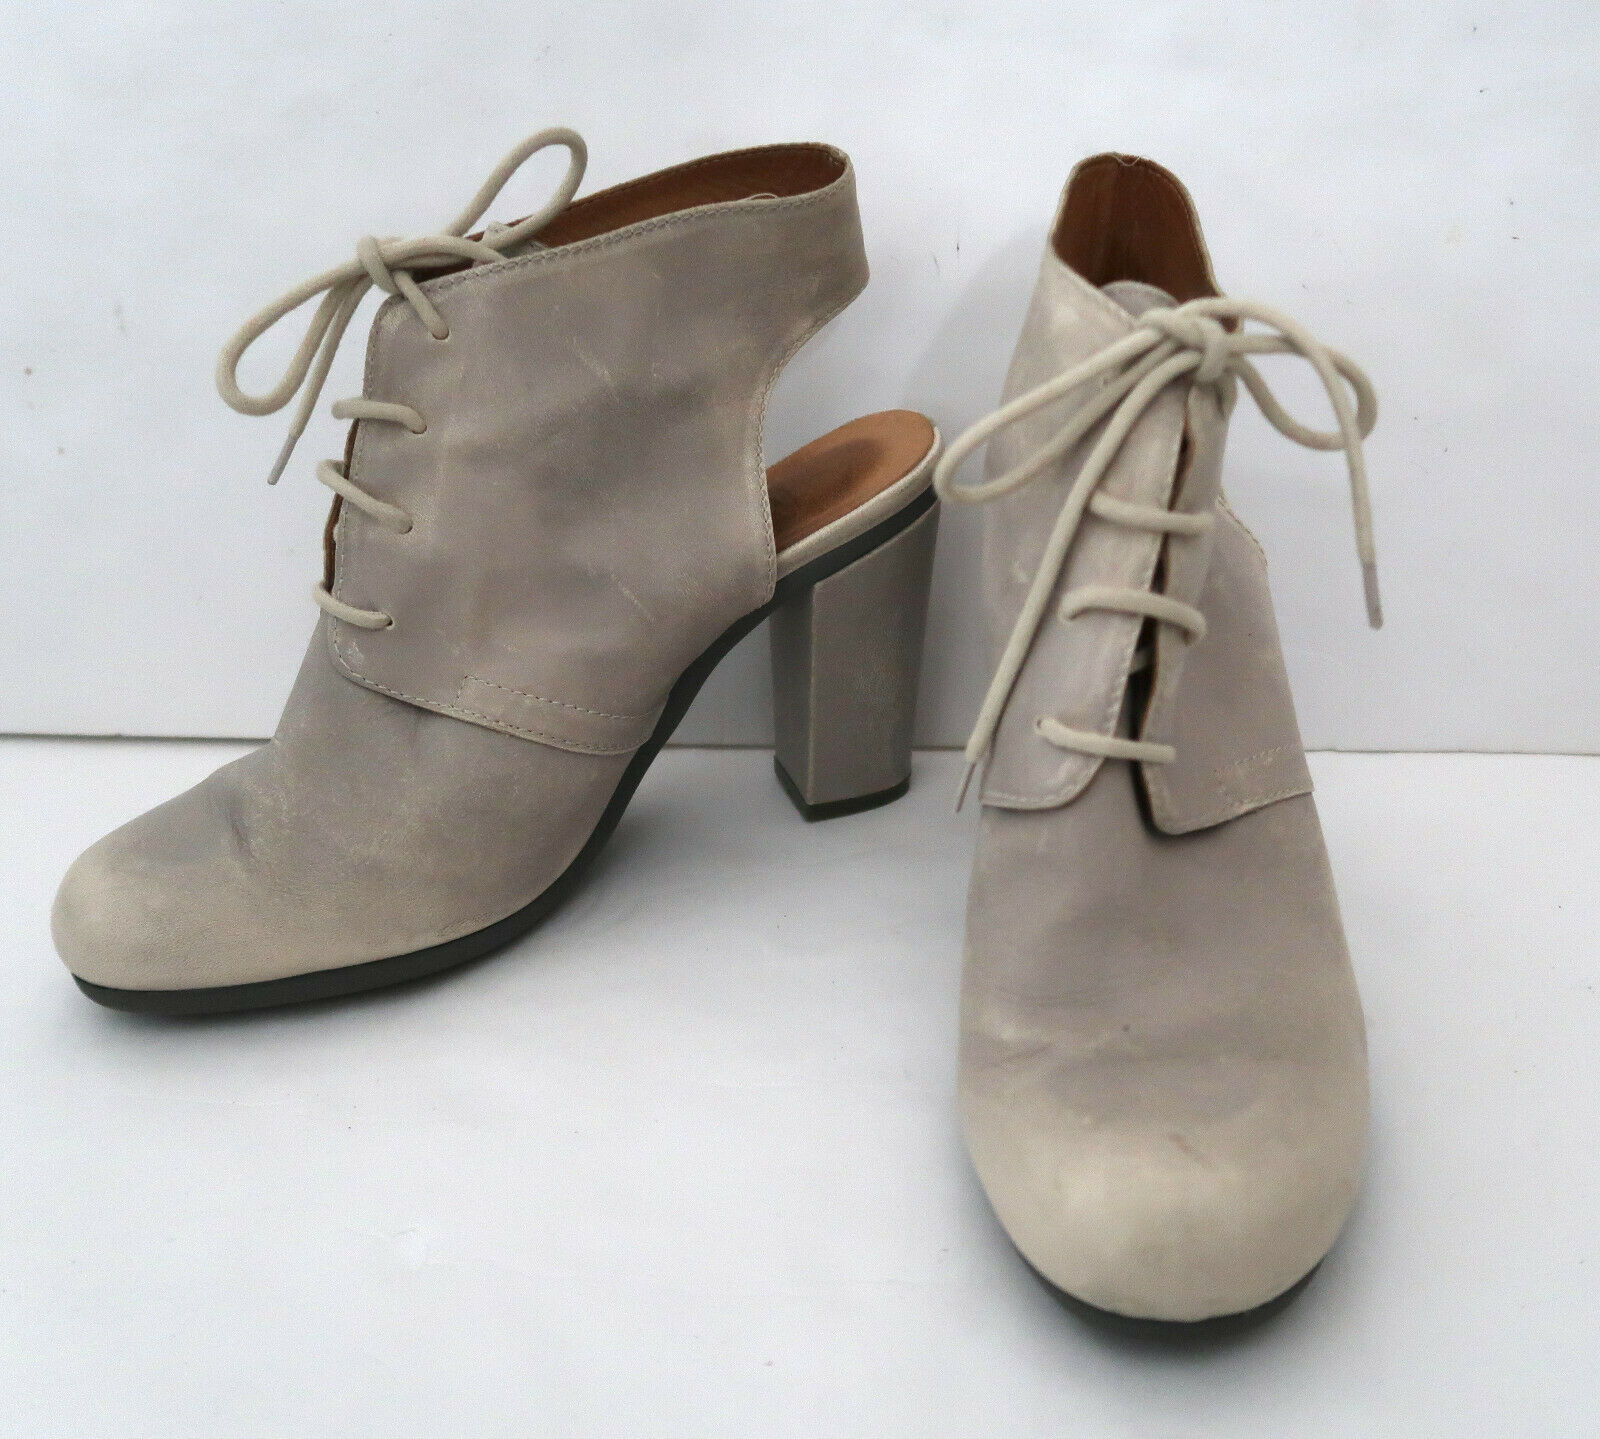 MM6 MARTIN MARGIELA distressed leather bootie sho… - image 10